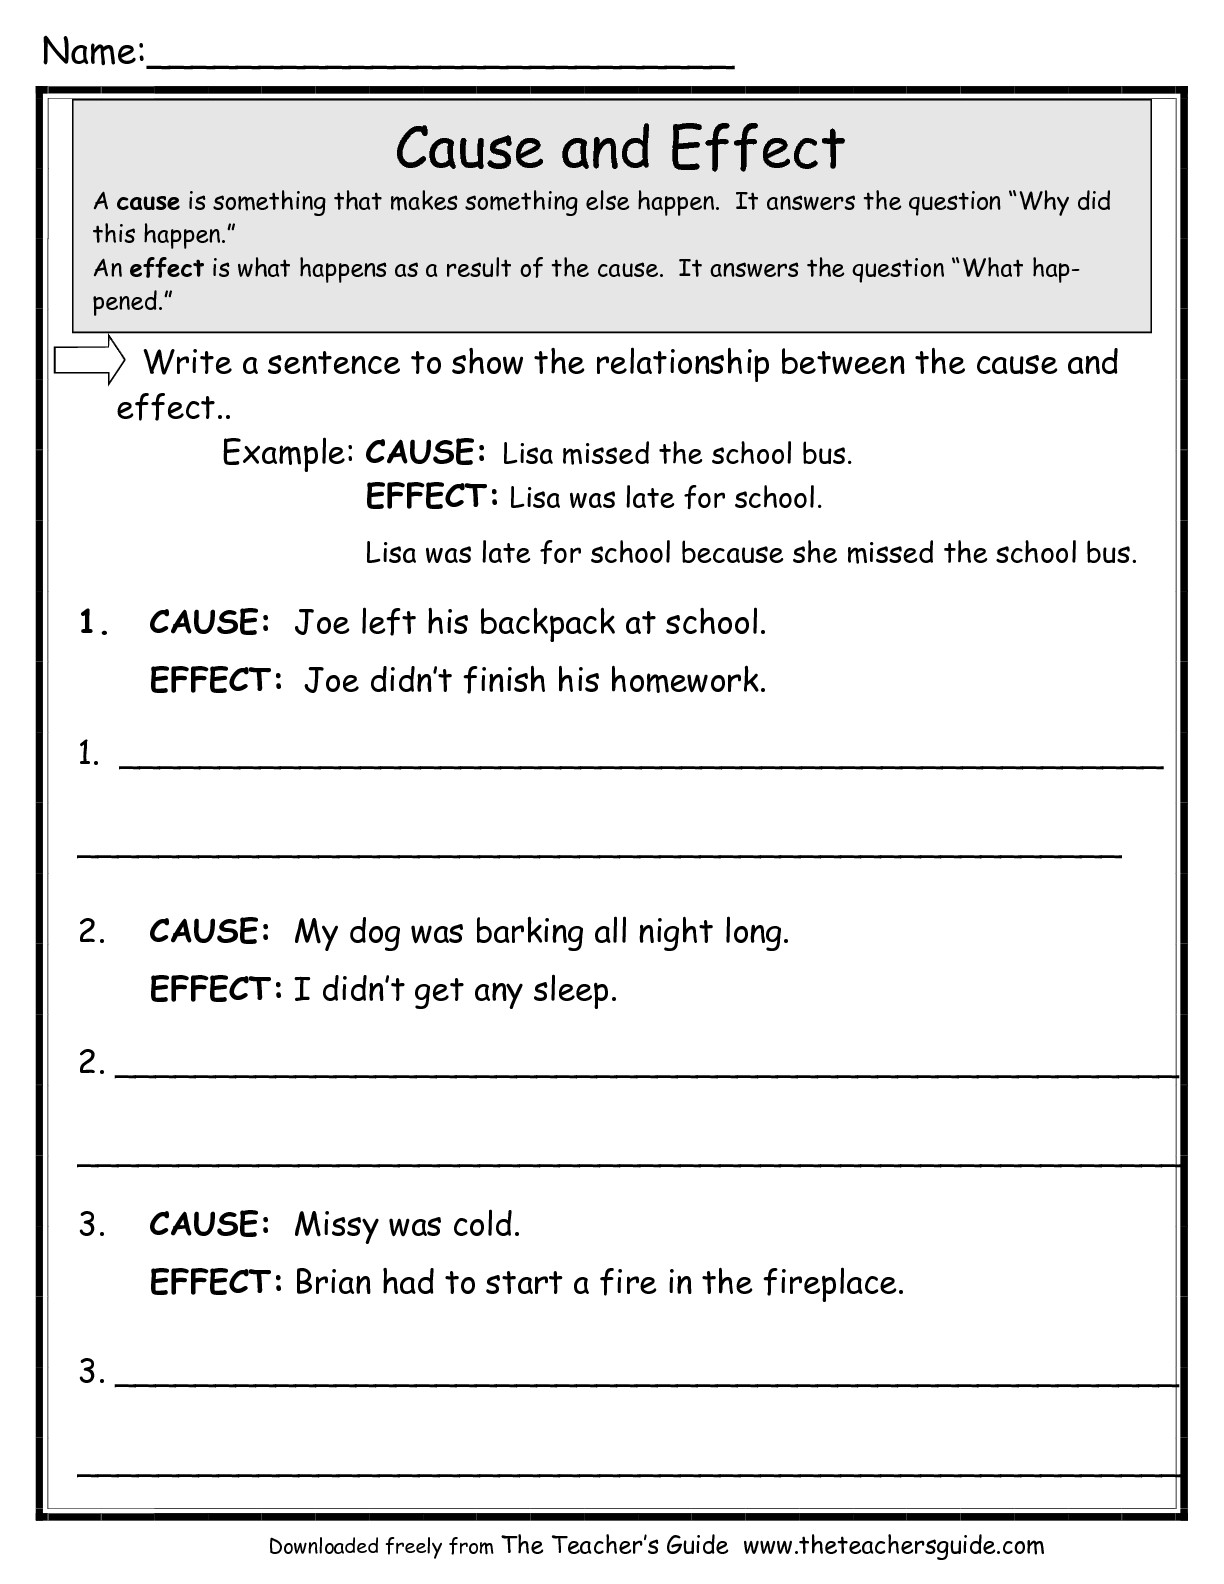 Worksheet 3rd Grade Comprehension Mikyu Free Worksheet – 3rd Grade Reading Comprehension Worksheets Multiple Choice